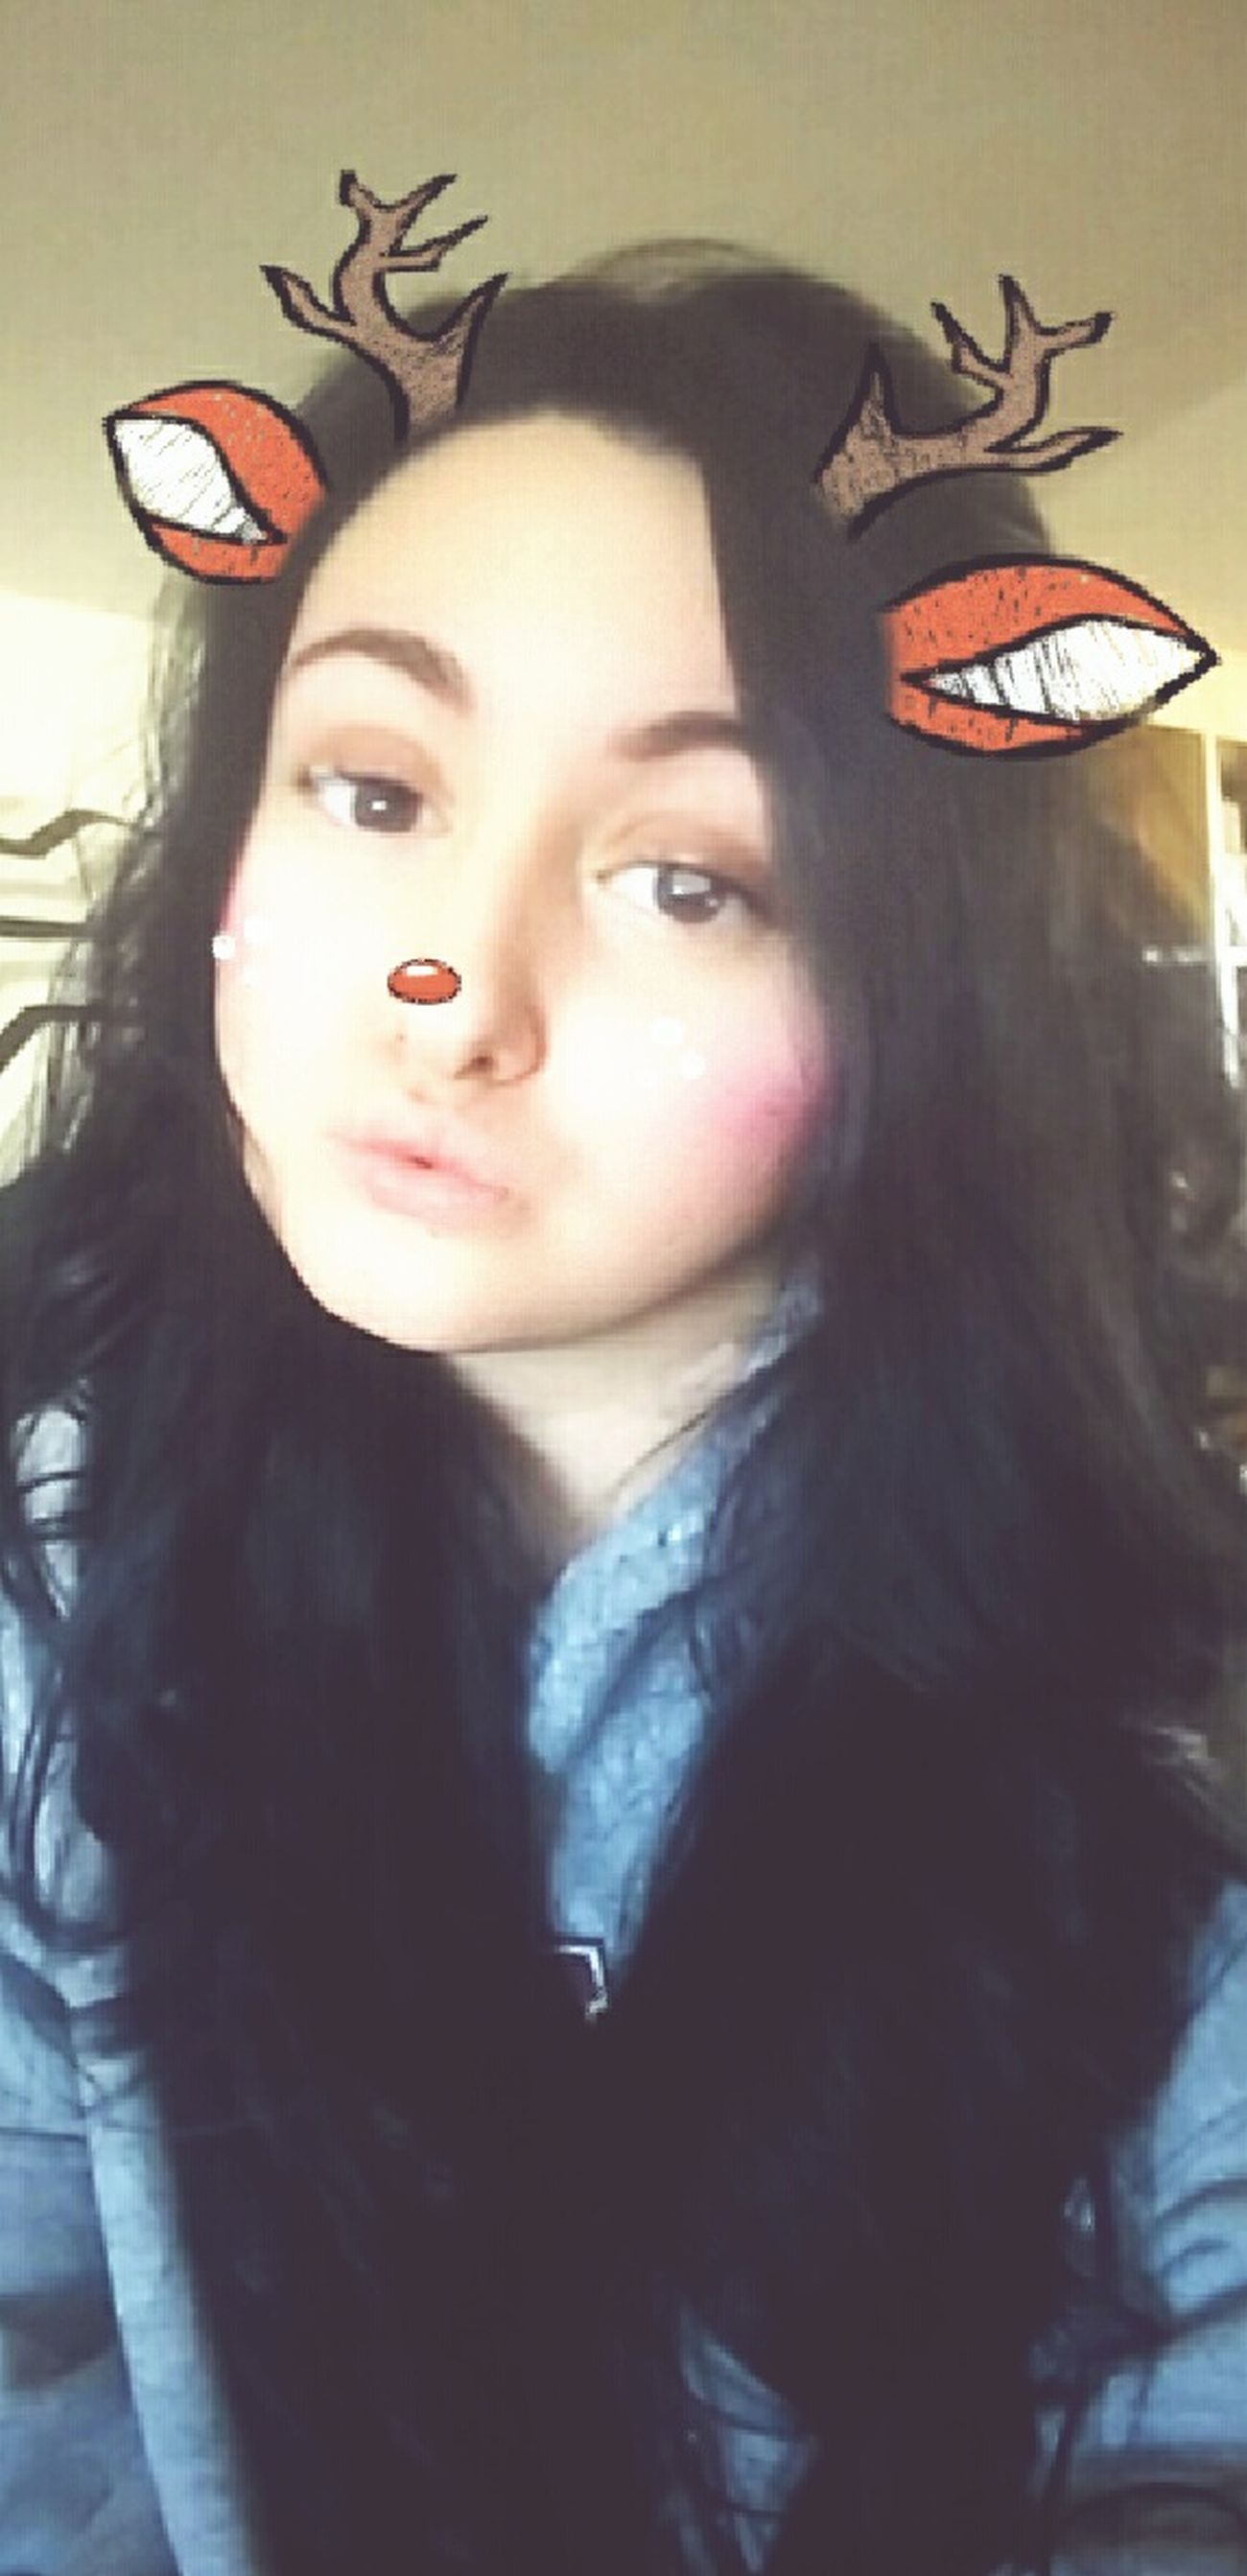 I have a huuuge obsession with this filter😂 Girl Modelgirl Model Snapchat Selfies Snapchat No Make-up No Makeup Without Makeup Beautiful Cozy At Home Christmas Spirit Reindeer Sexygirl SexyGirl.♥